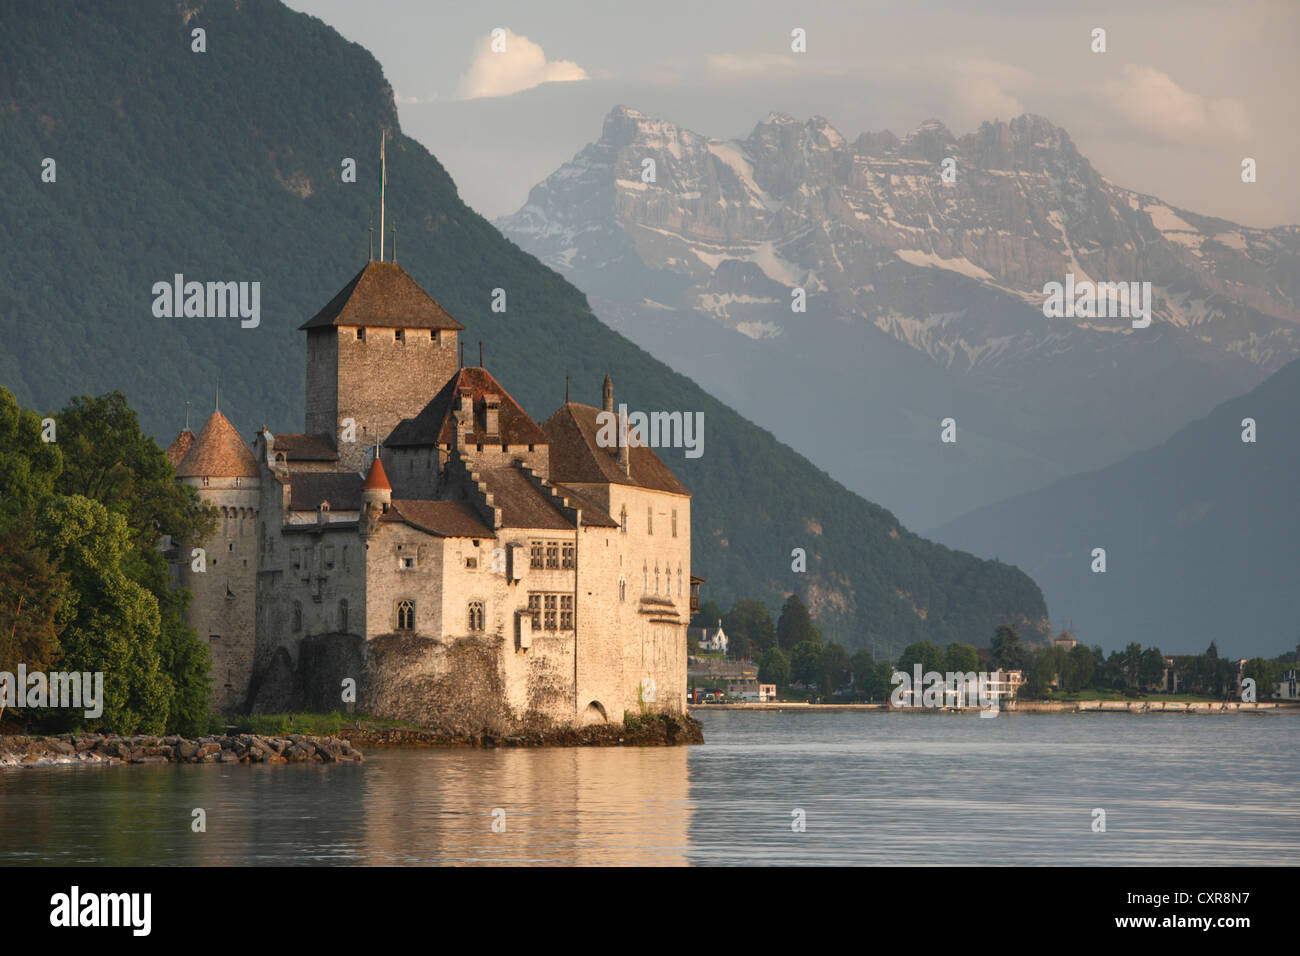 Chateau du Chillon on the edge of Lake Geneva, Switzerland - Stock Image